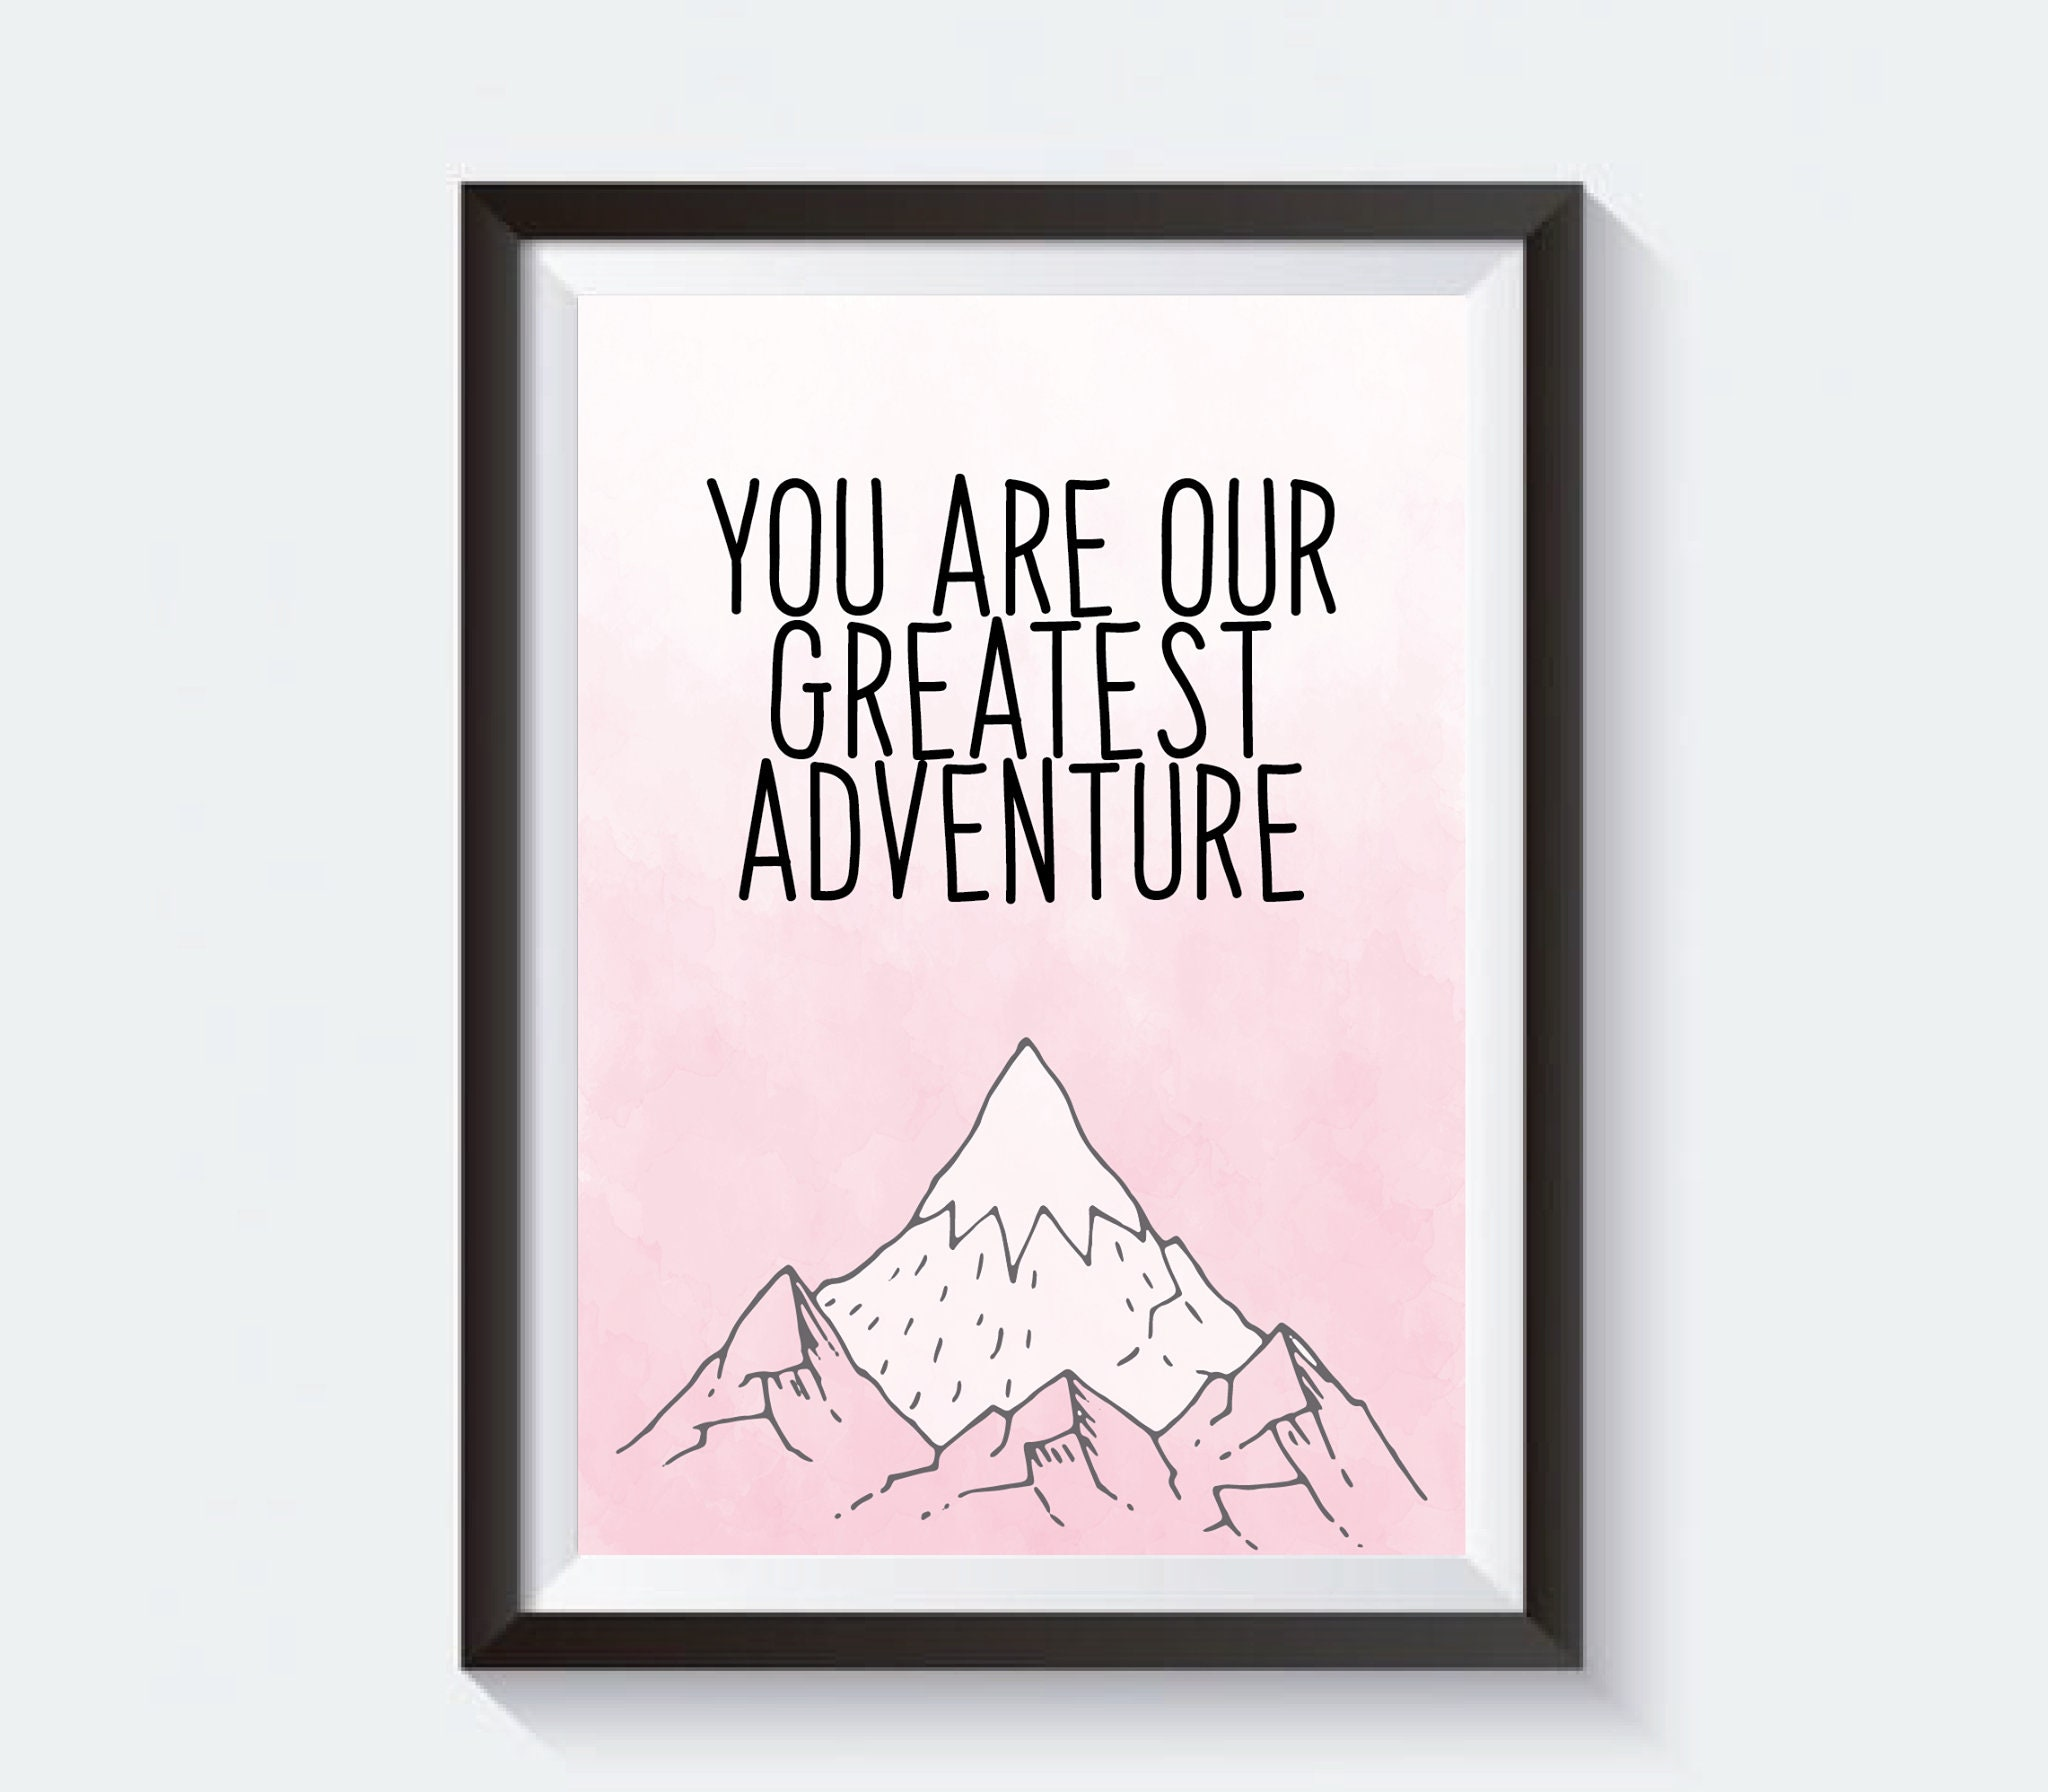 Greatest Adventure Nursery Prints, Nursery Wall Art, Nursery Decor, Nursery